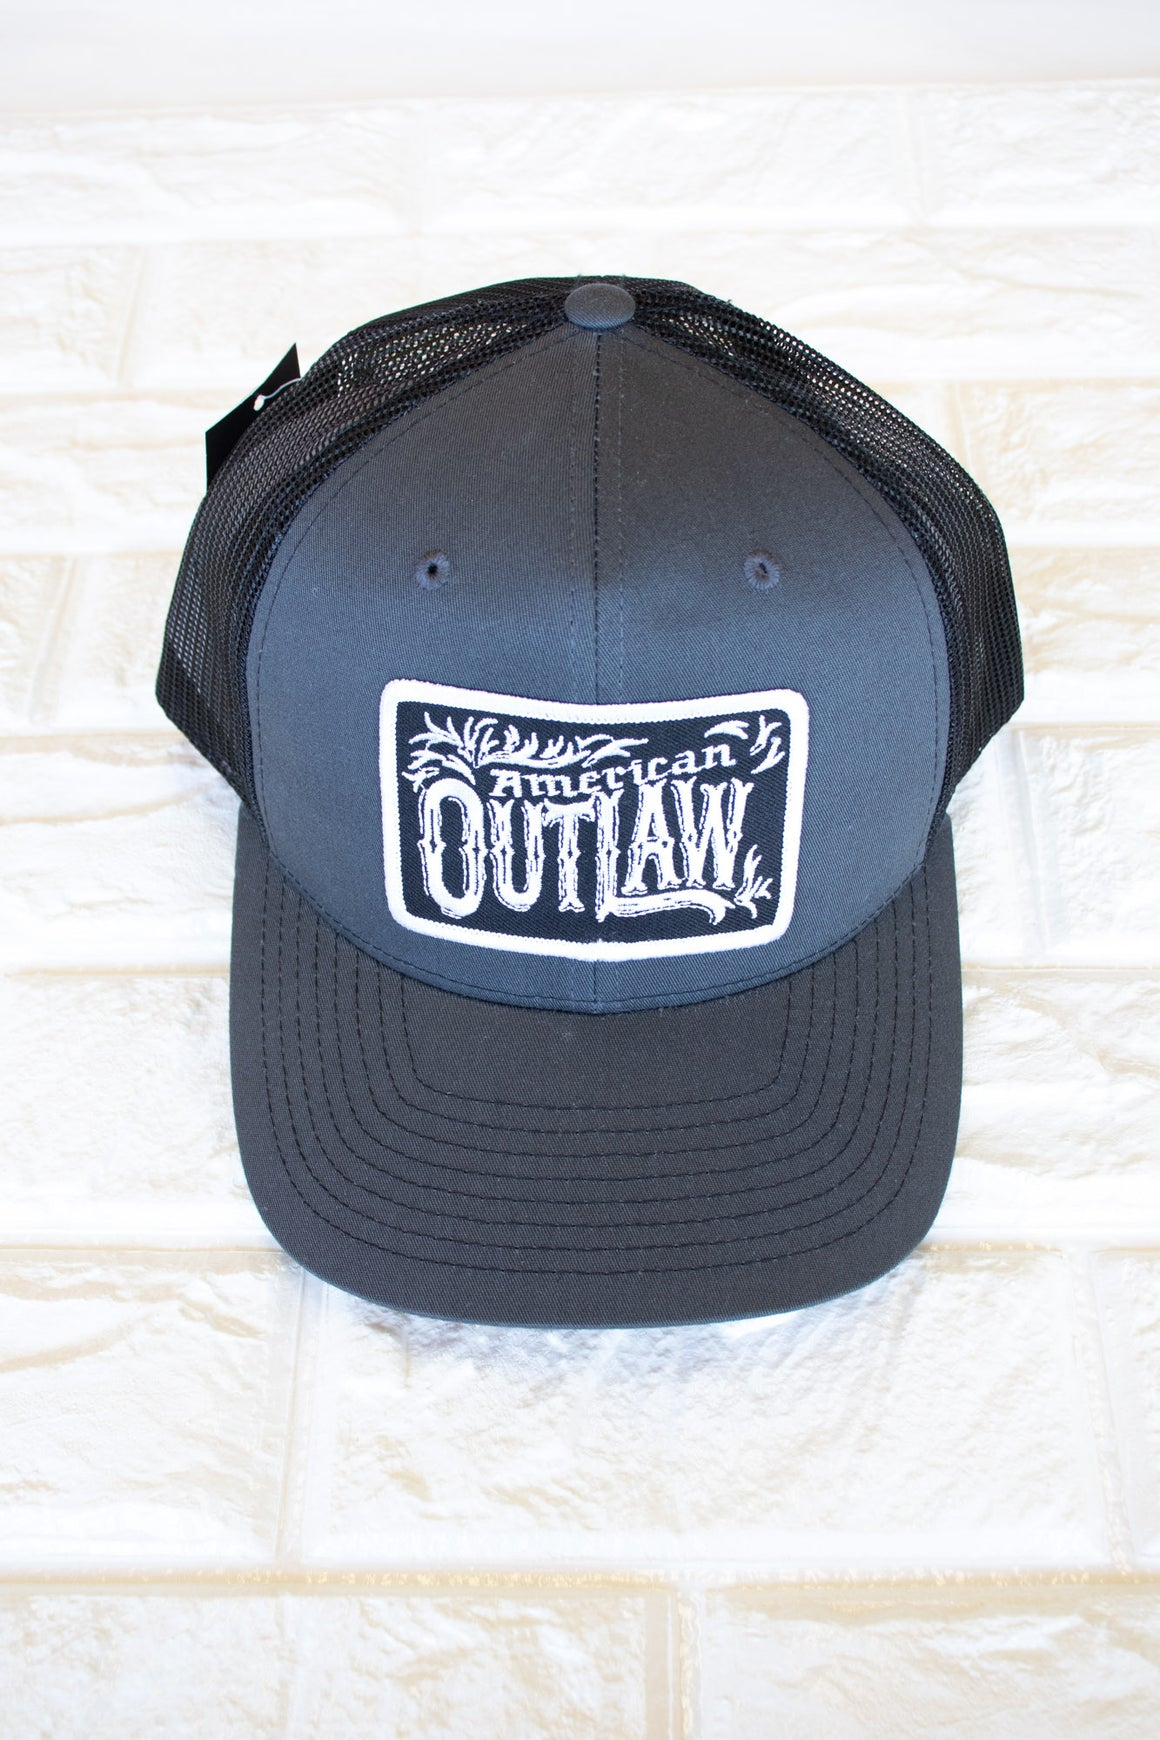 American Outlaw Trucker Hat - ShopSpoiled